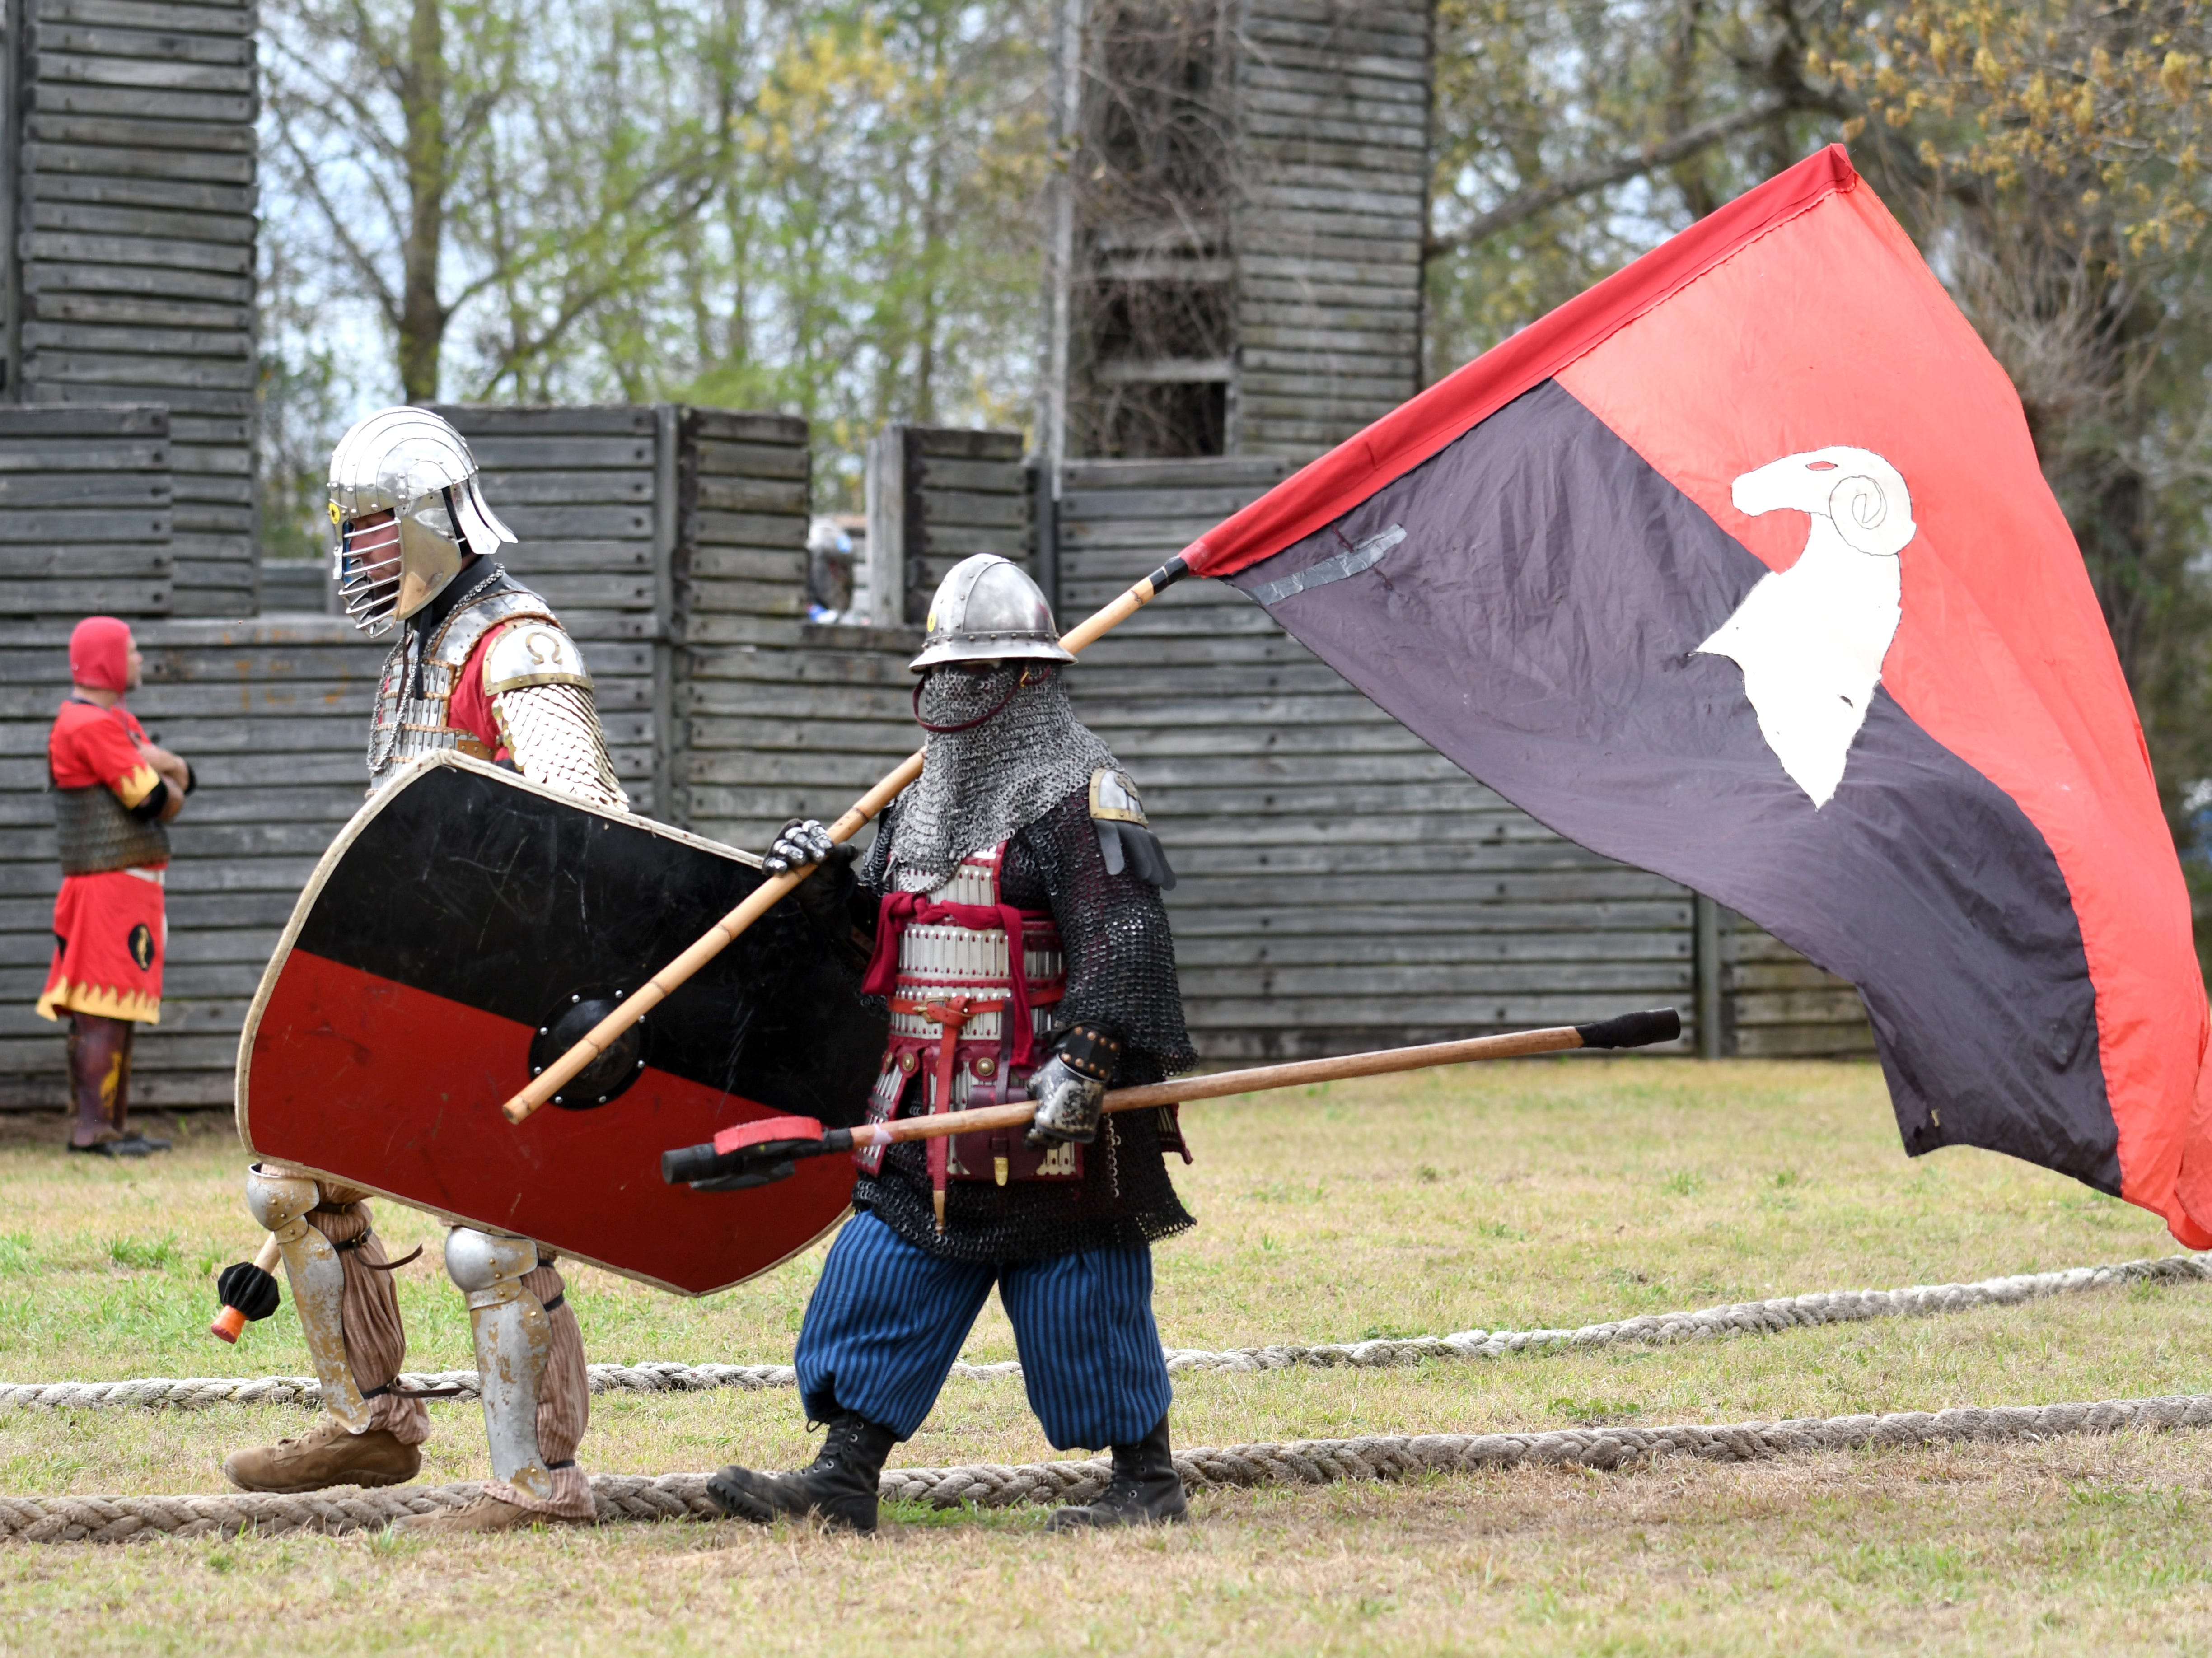 Armed fighters prepare for a field battle during Gulf Wars XXVIII at King's Arrow Ranch in Lumberton on Monday, March 11, 2019.